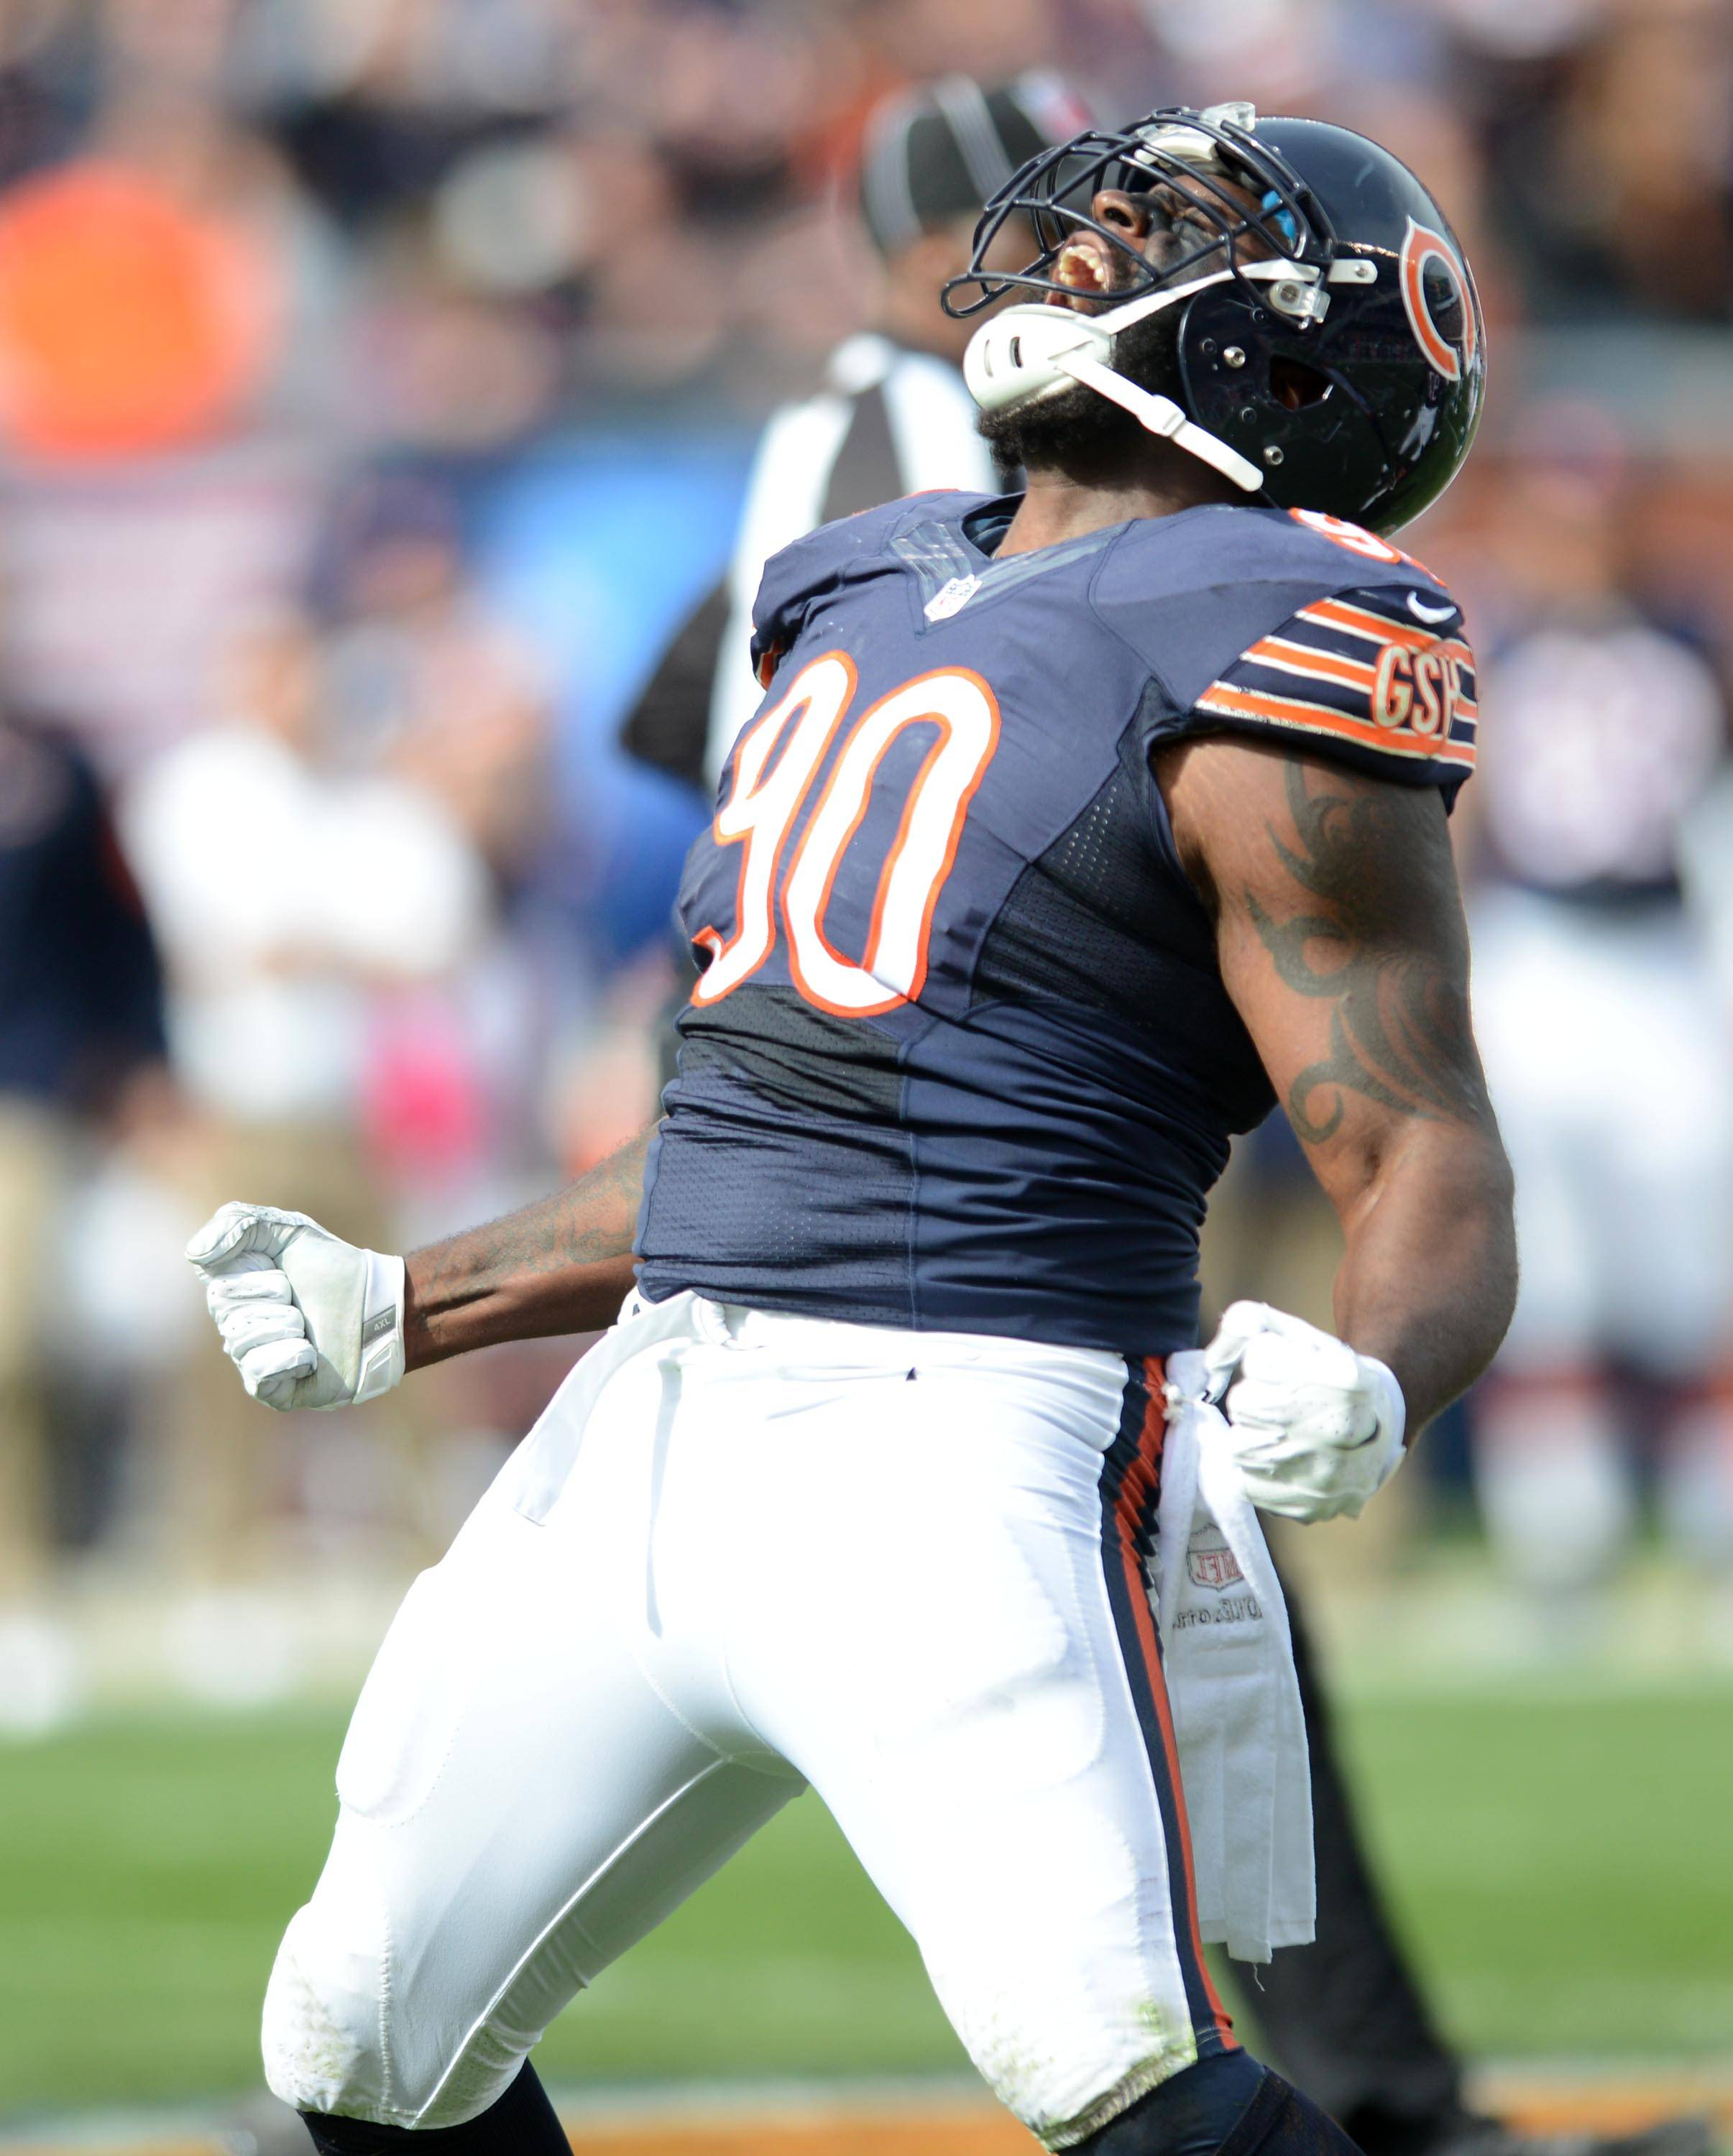 Defensive tackle Jeremiah Ratliff could play a key role for the Bears this season in their 3-4 scheme.